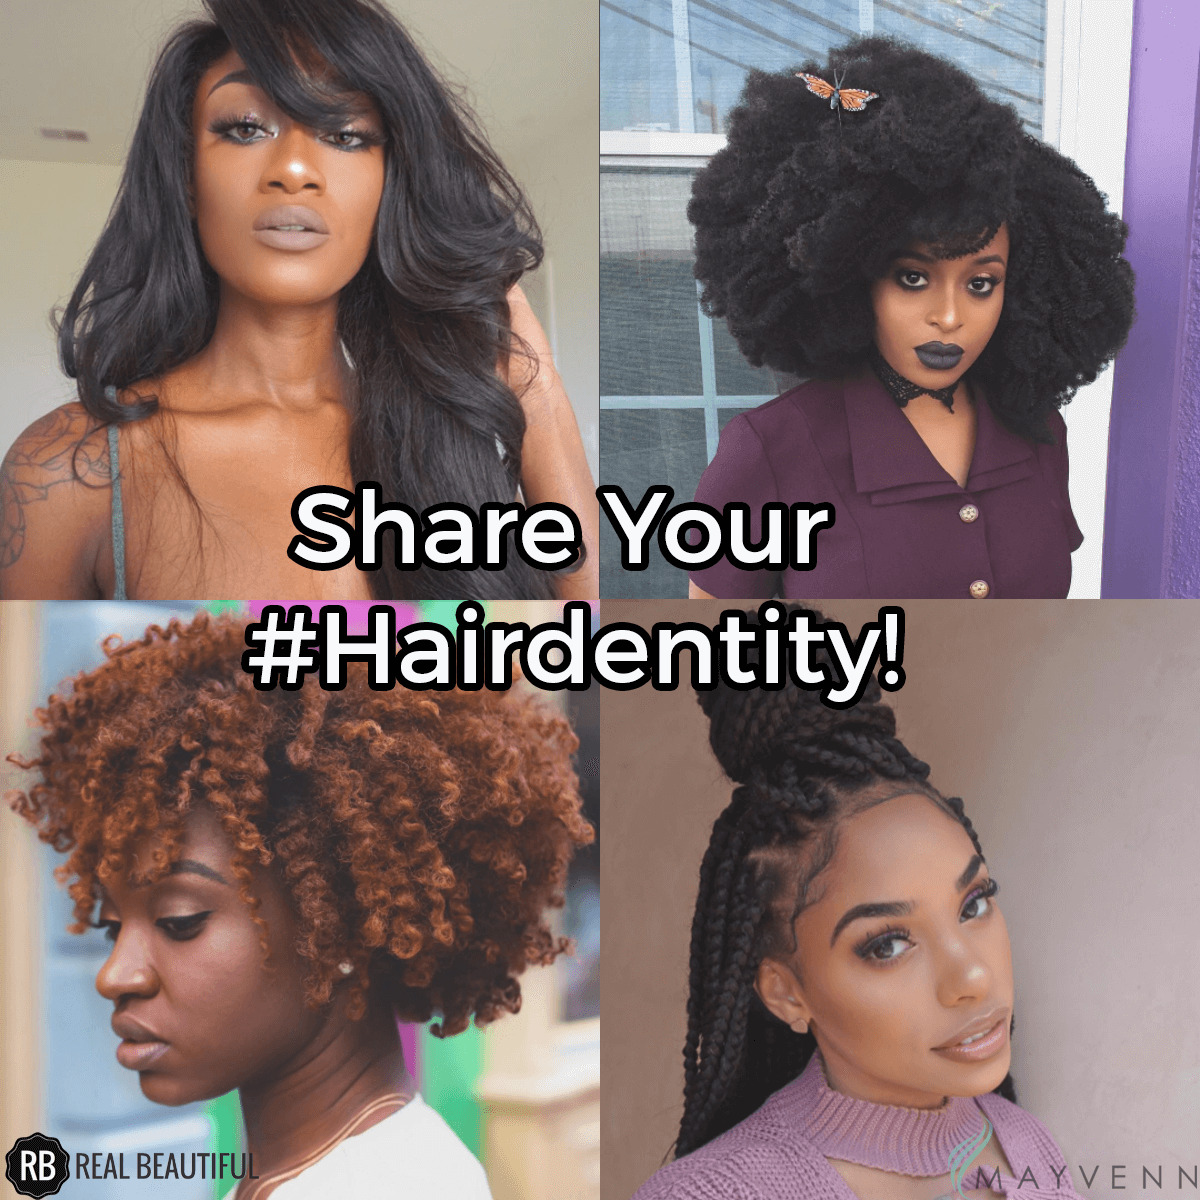 going natural hairdentity